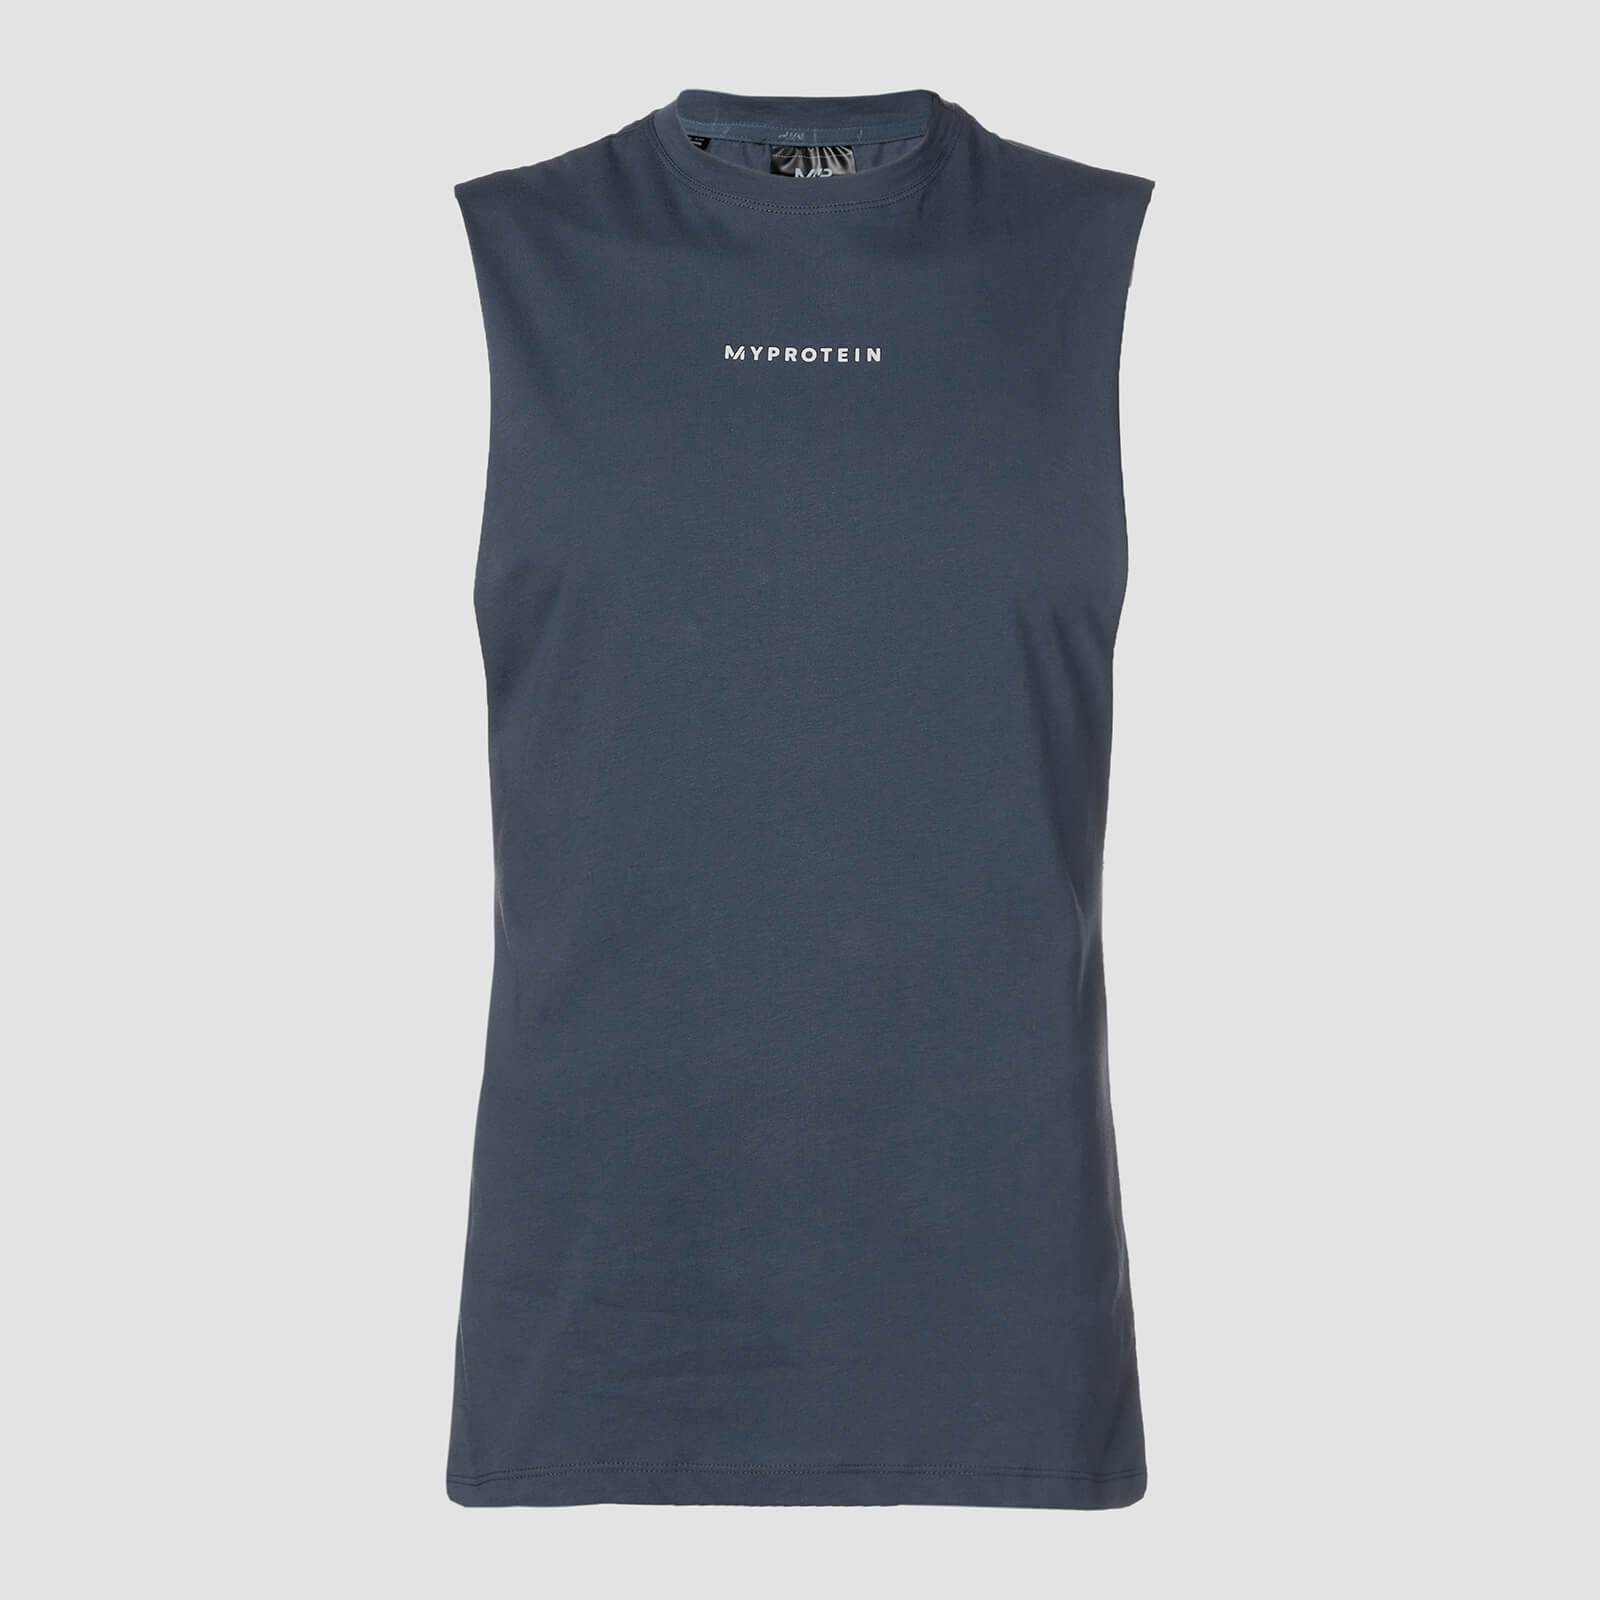 Myprotein Canotta Original Contemporary Drop Armhole - Inchiostro - S